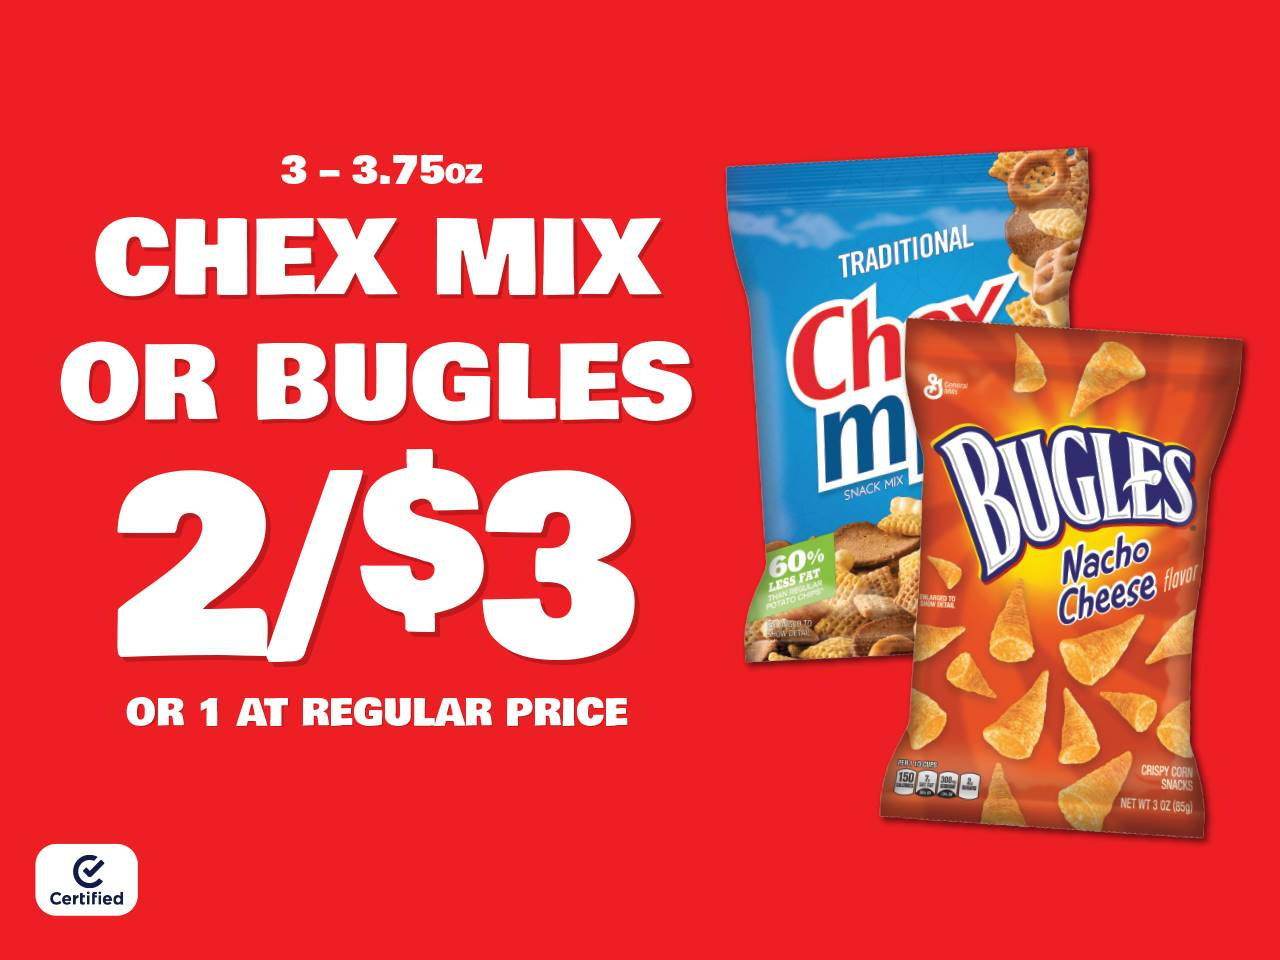 3-3.75oz Chex Mix or Bugles 2 for $3 or 1 at Reg Price